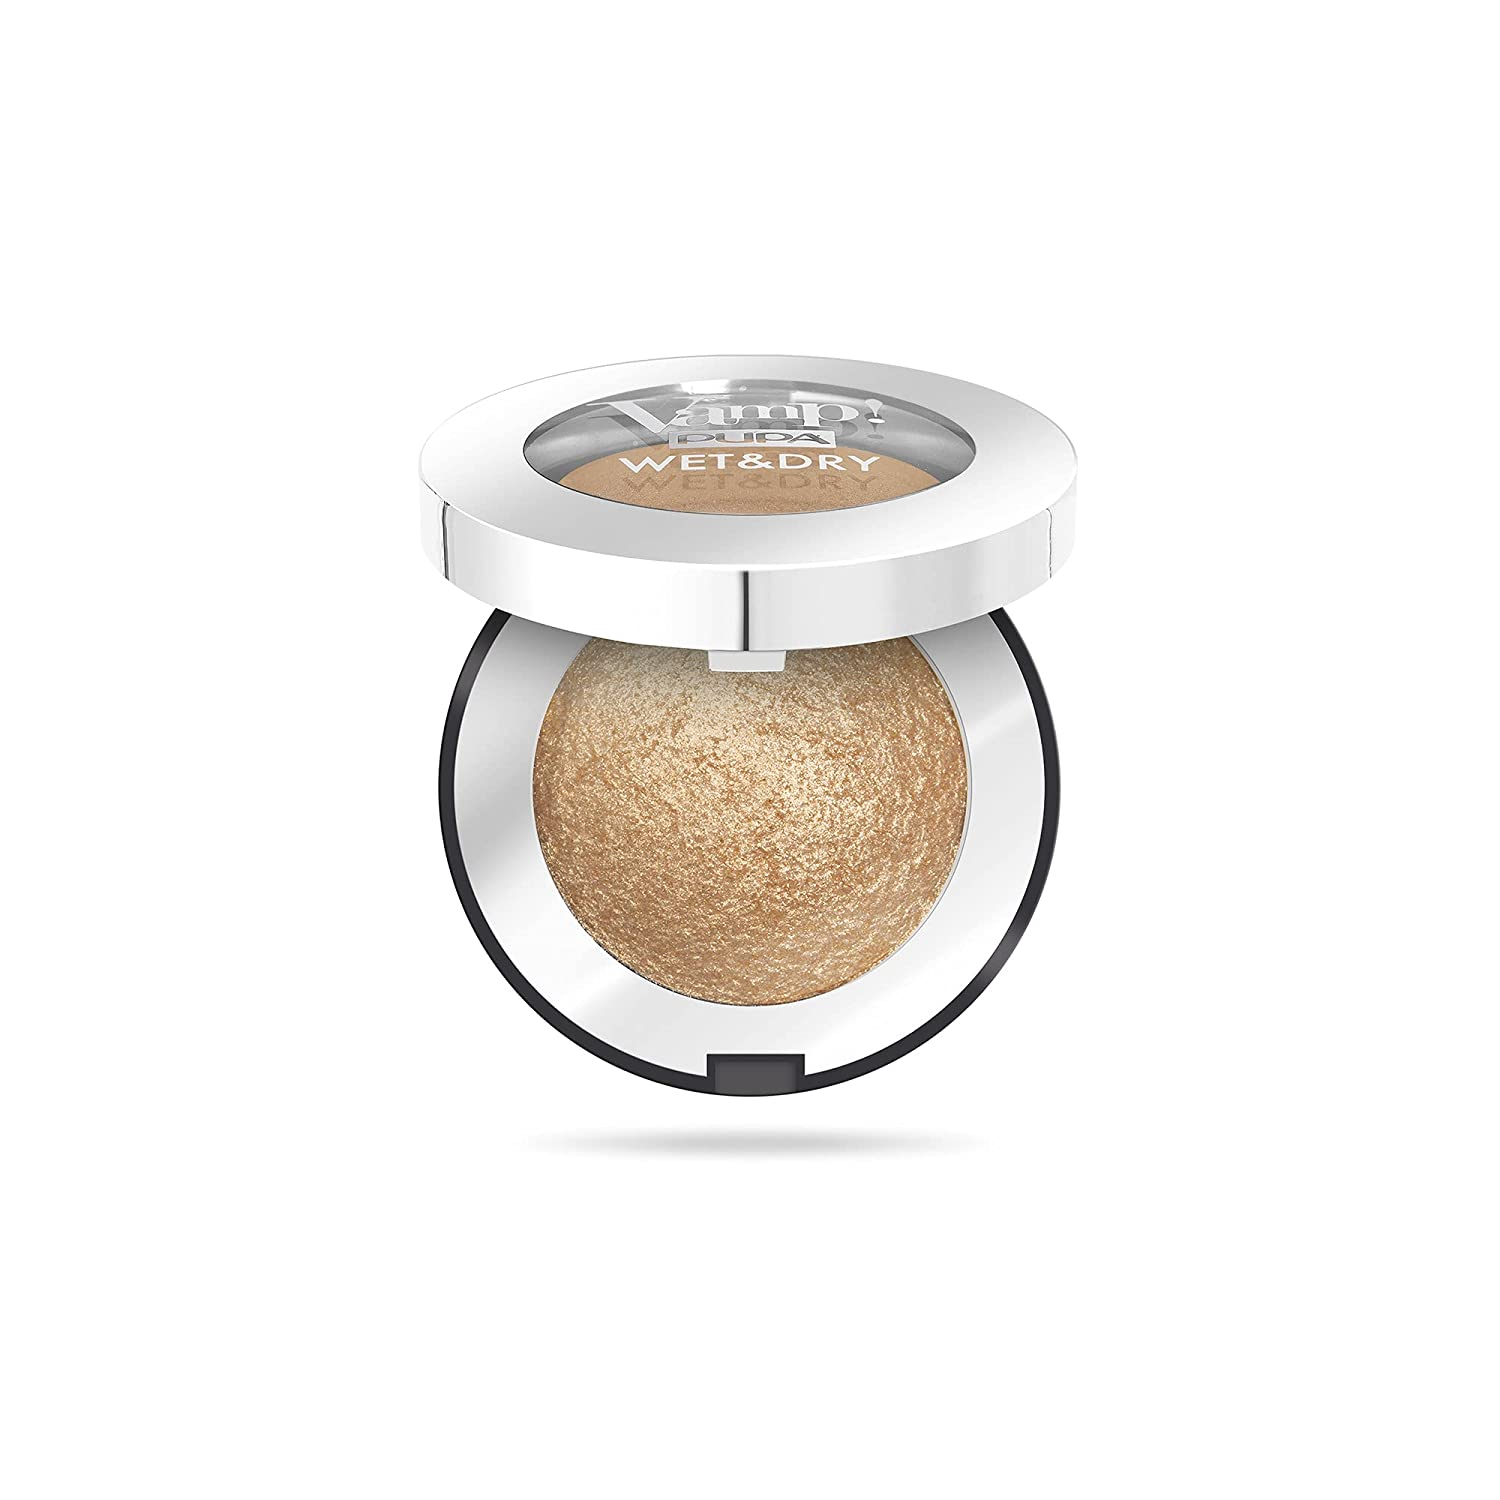 Vamp! Wet and Dry Baked Eyeshadow – 101 Precious Gold by Pupa Milano for Women – 0.035 oz Eye Shadow